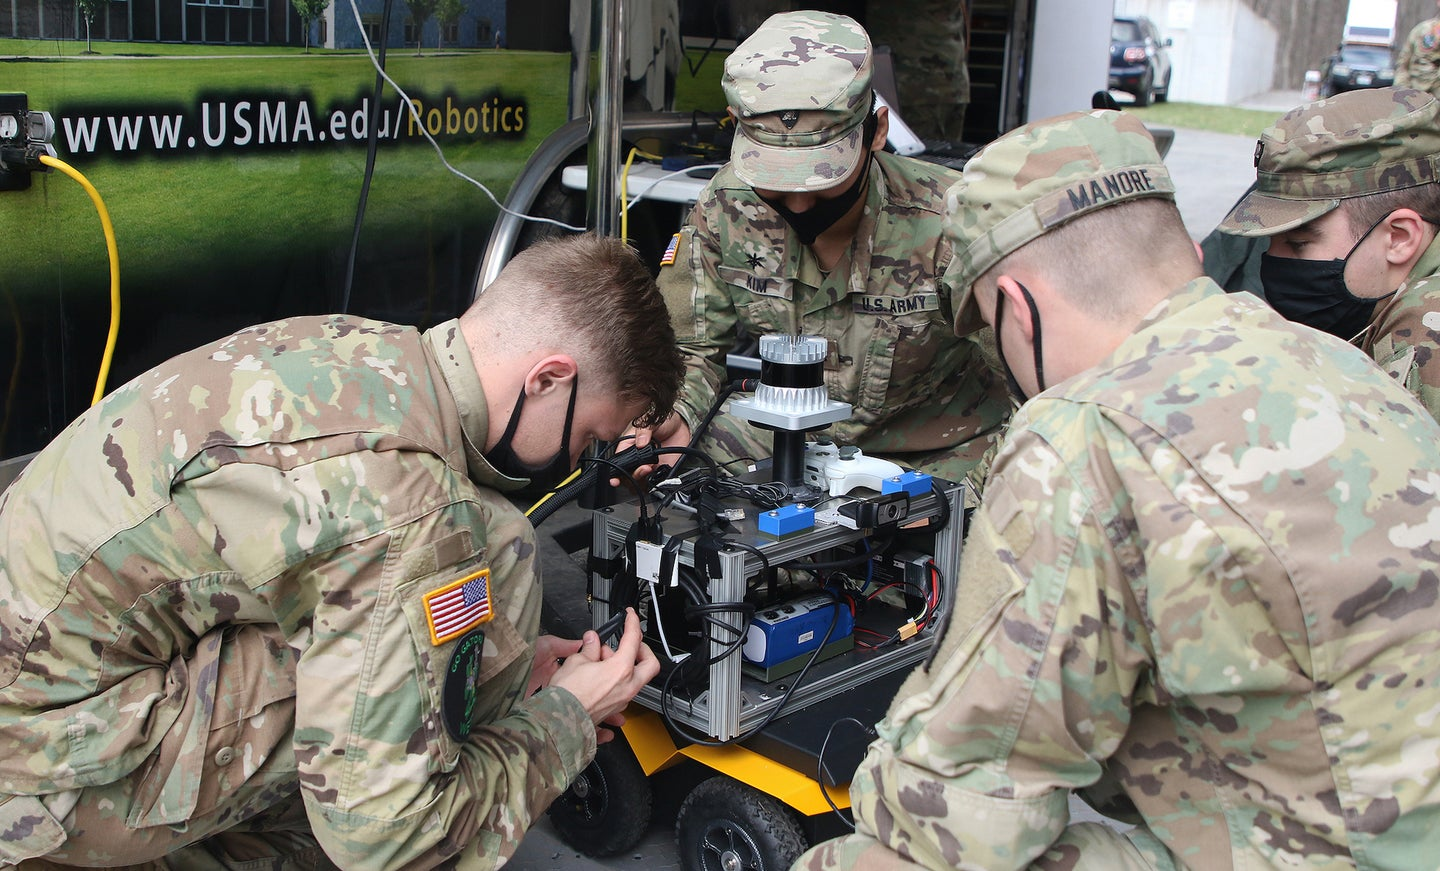 Soldiers work on a robot